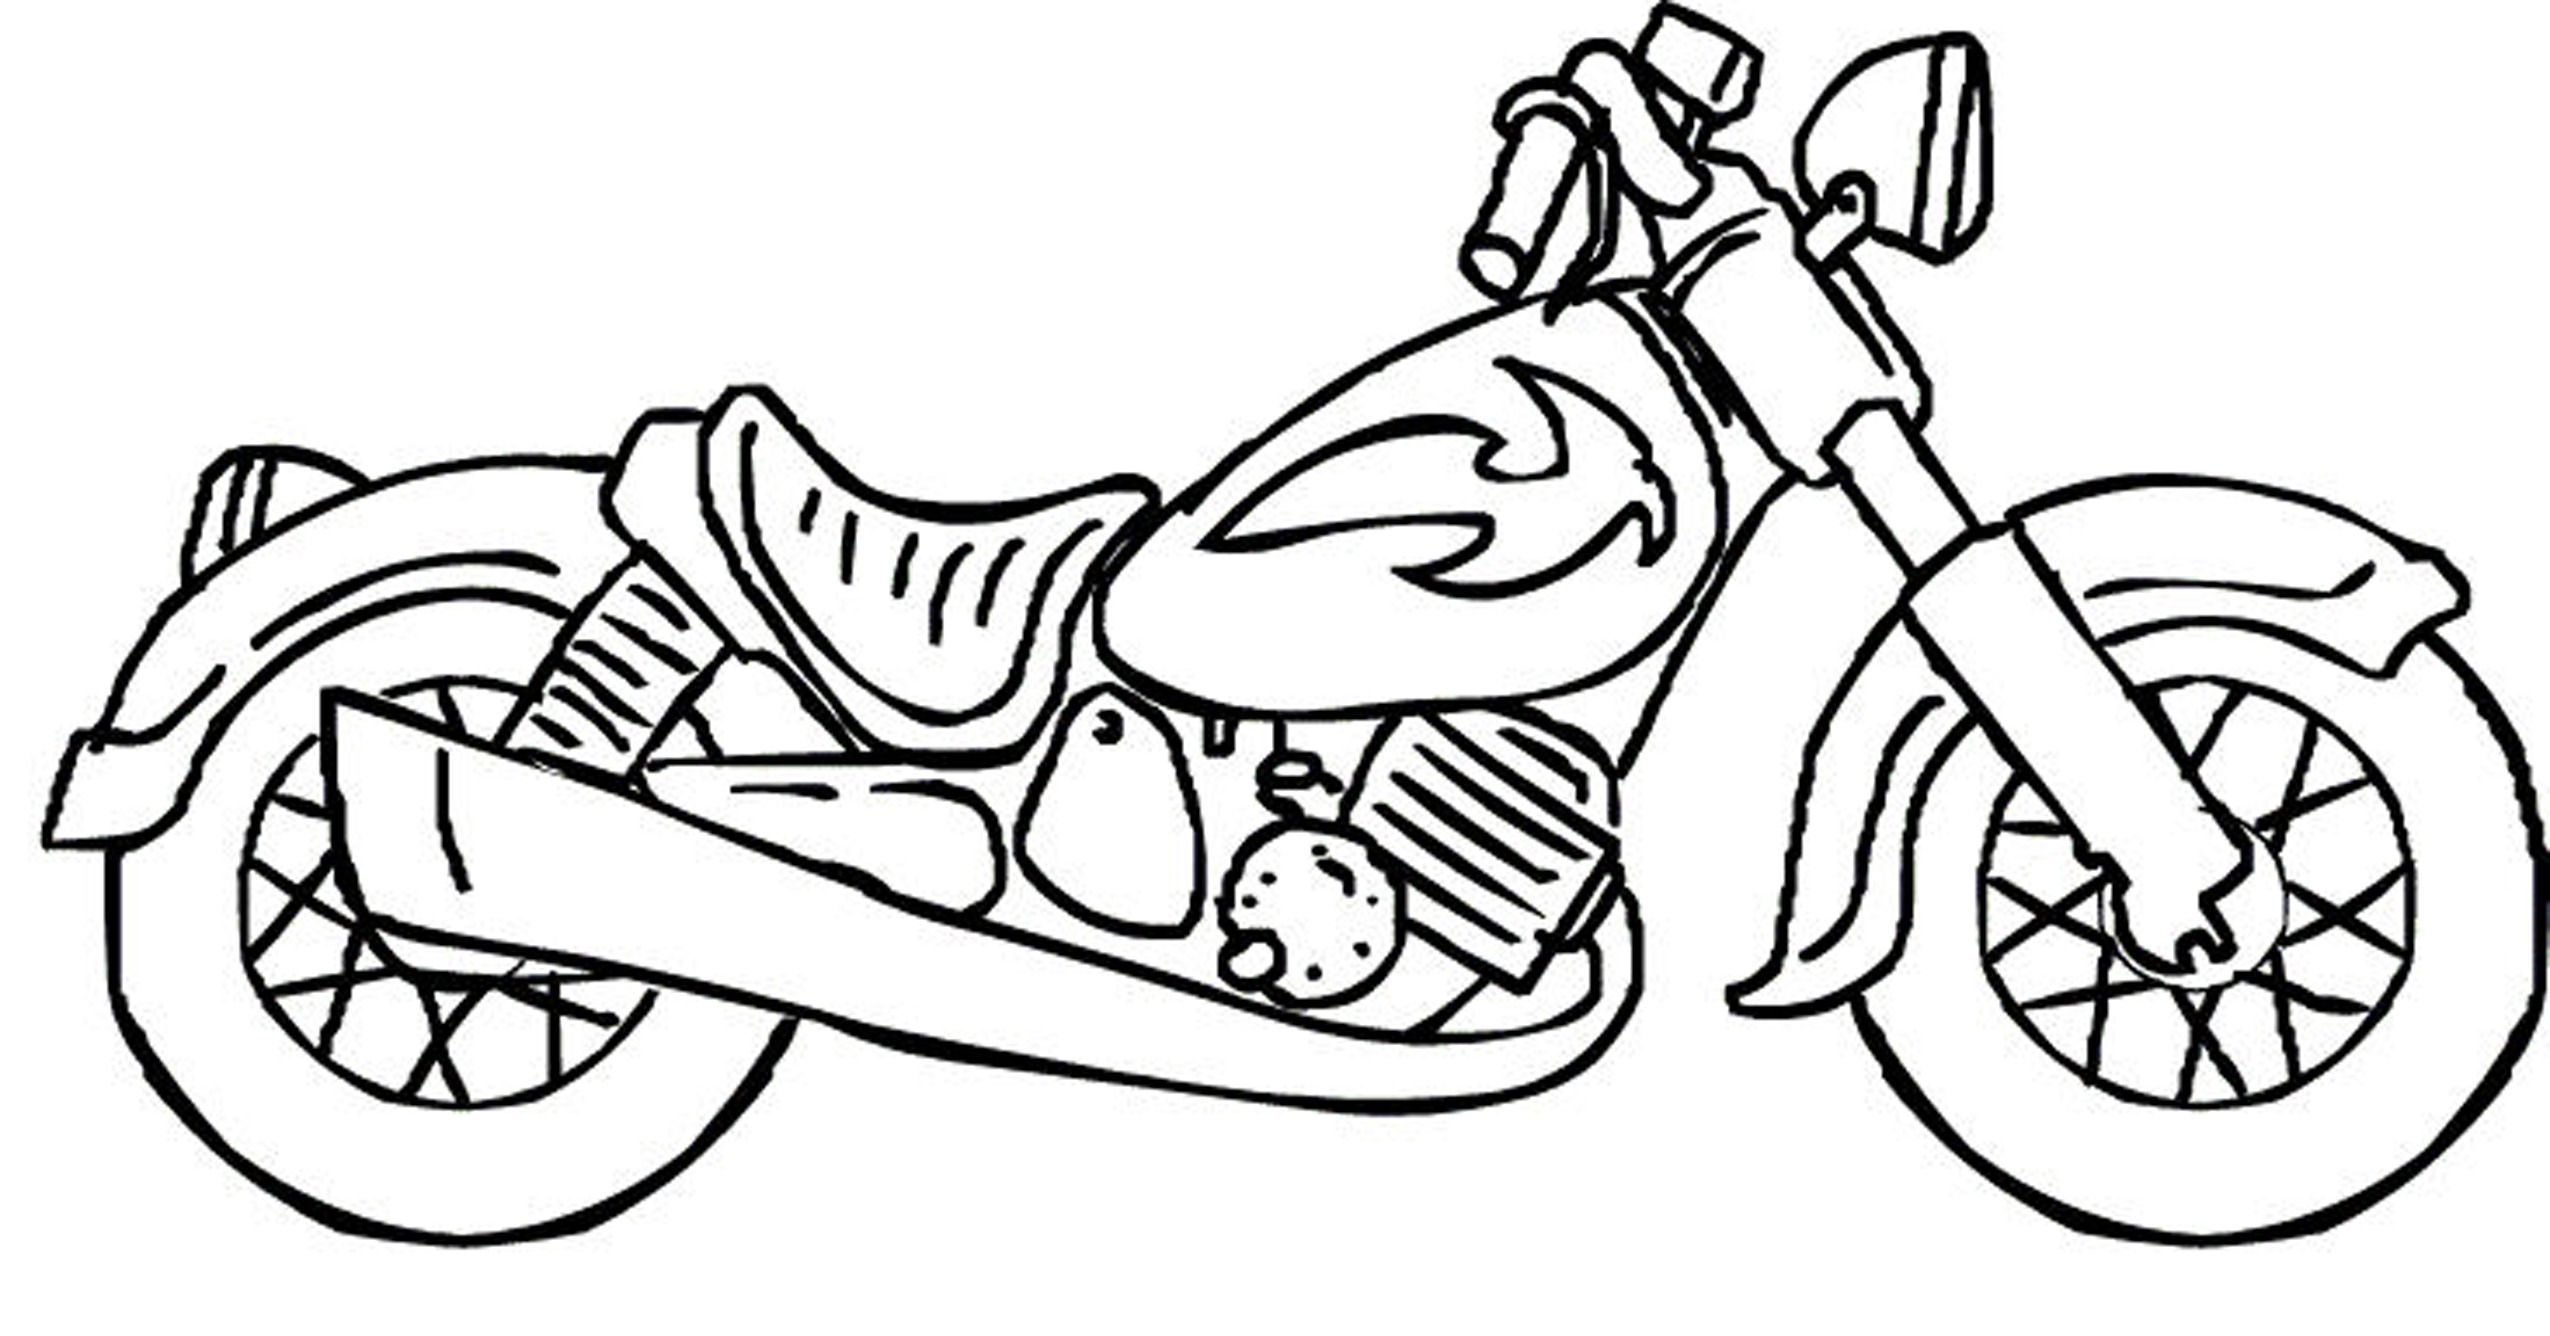 Coloring Pages For Boys Cars Printable Kids Colouring Pages Coloring Pages For Boys Coloring Sheets For Boys Truck Coloring Pages